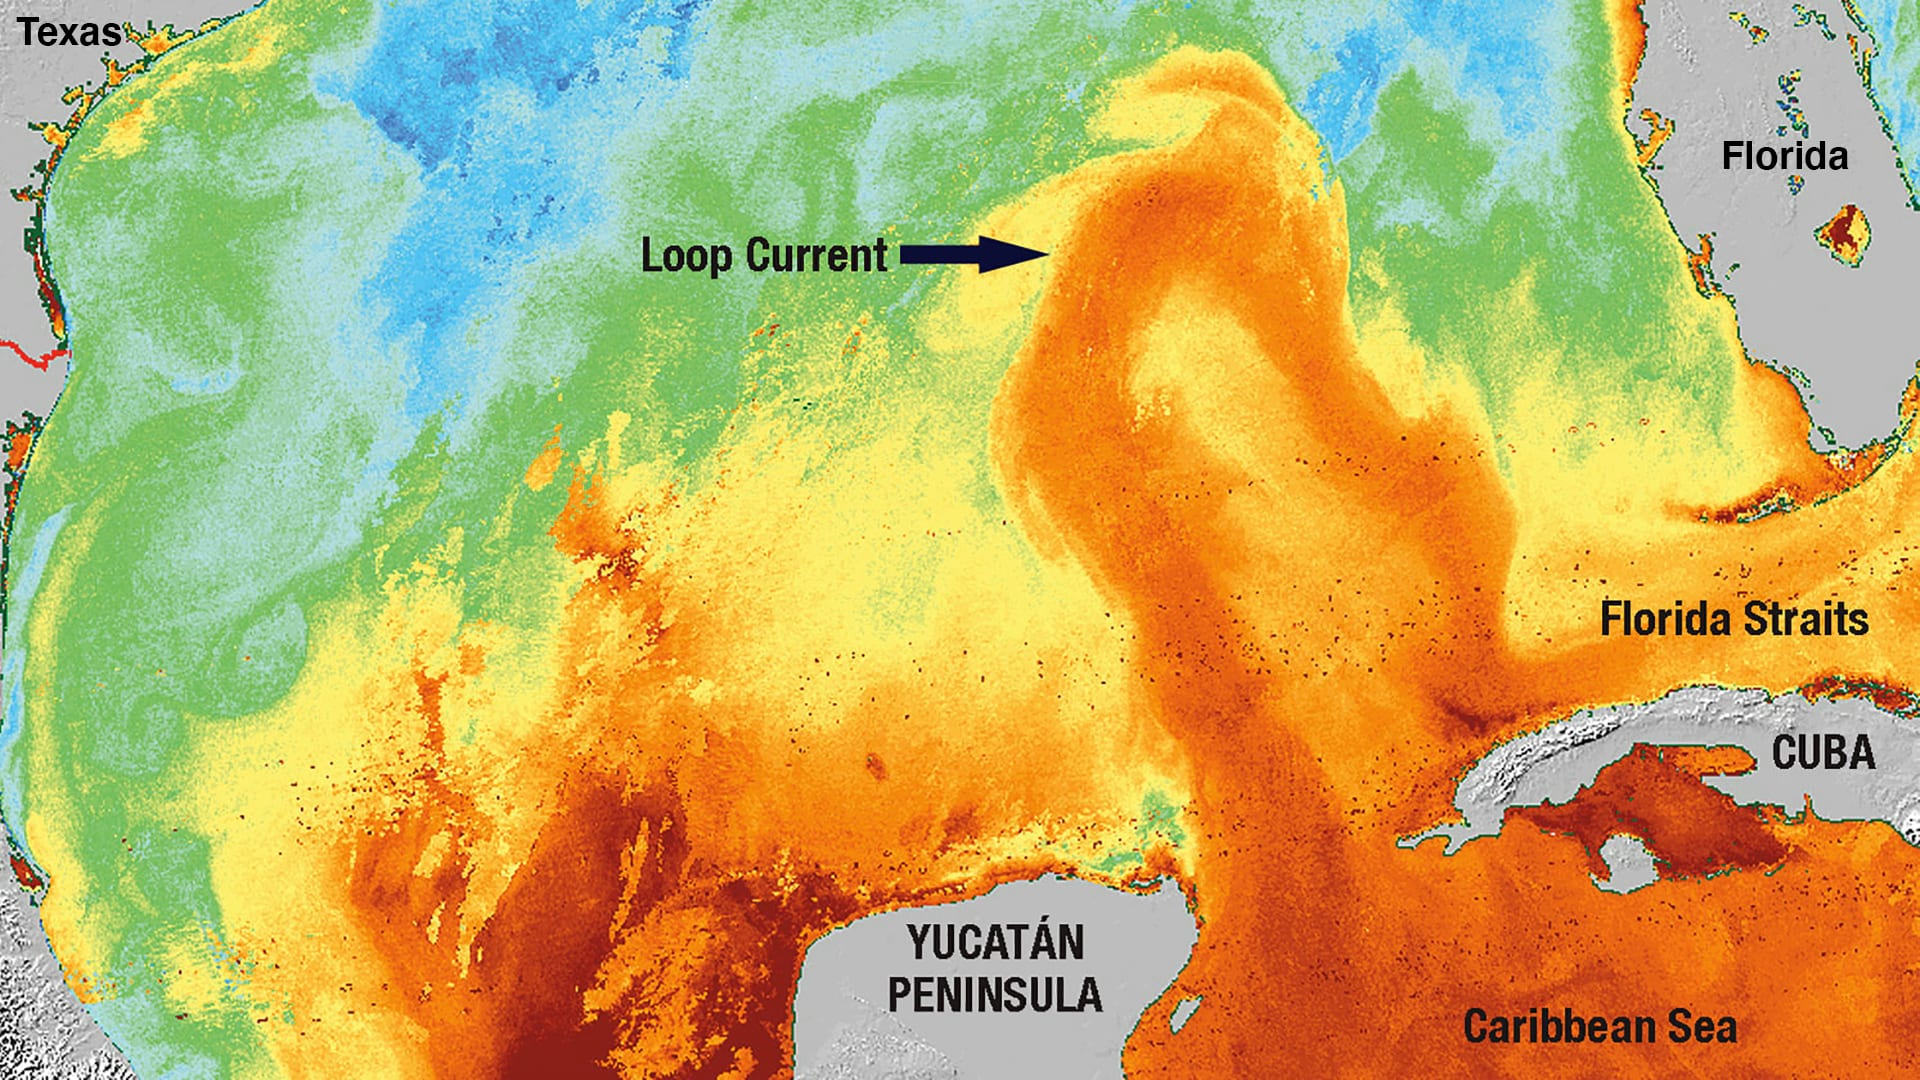 The Loop Current (orange) is like a big river of warm water that flows northward from the Caribbean Sea. It sometimes loops up close to Louisiana and then swoops back down through the Florida Straits and into the Atlantic Ocean. (Sea surface temperature image by the Ocean Remote Sensing Group, © Johns Hopkins University Applied Physics Laboratory)